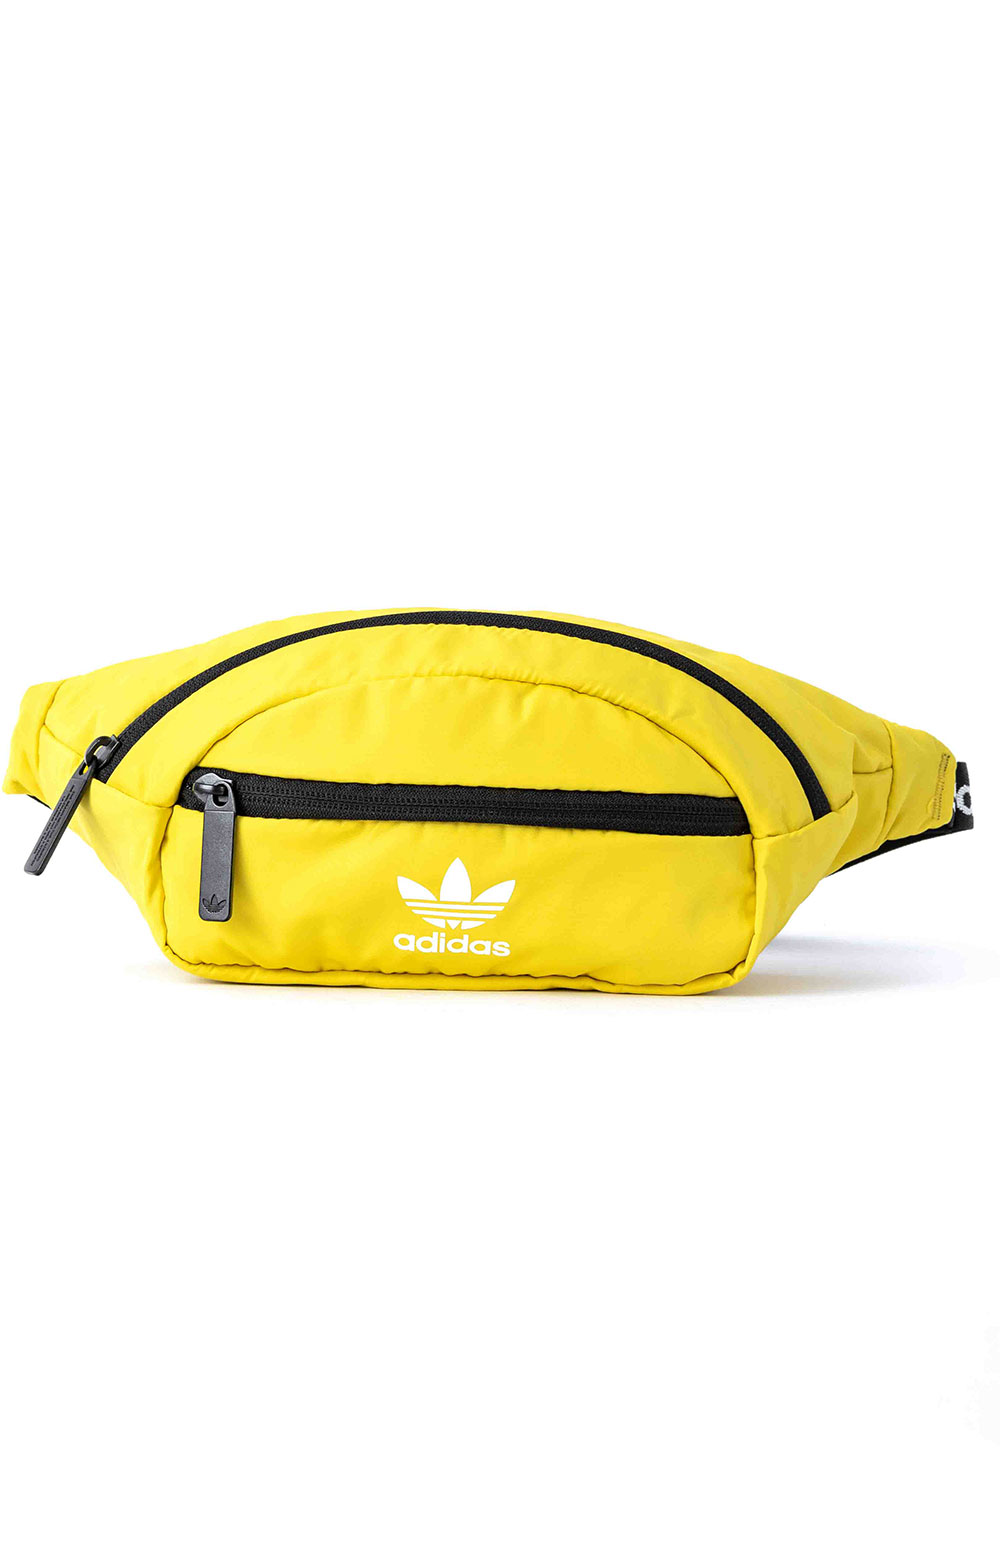 Originals National Waist Pack - Yellow